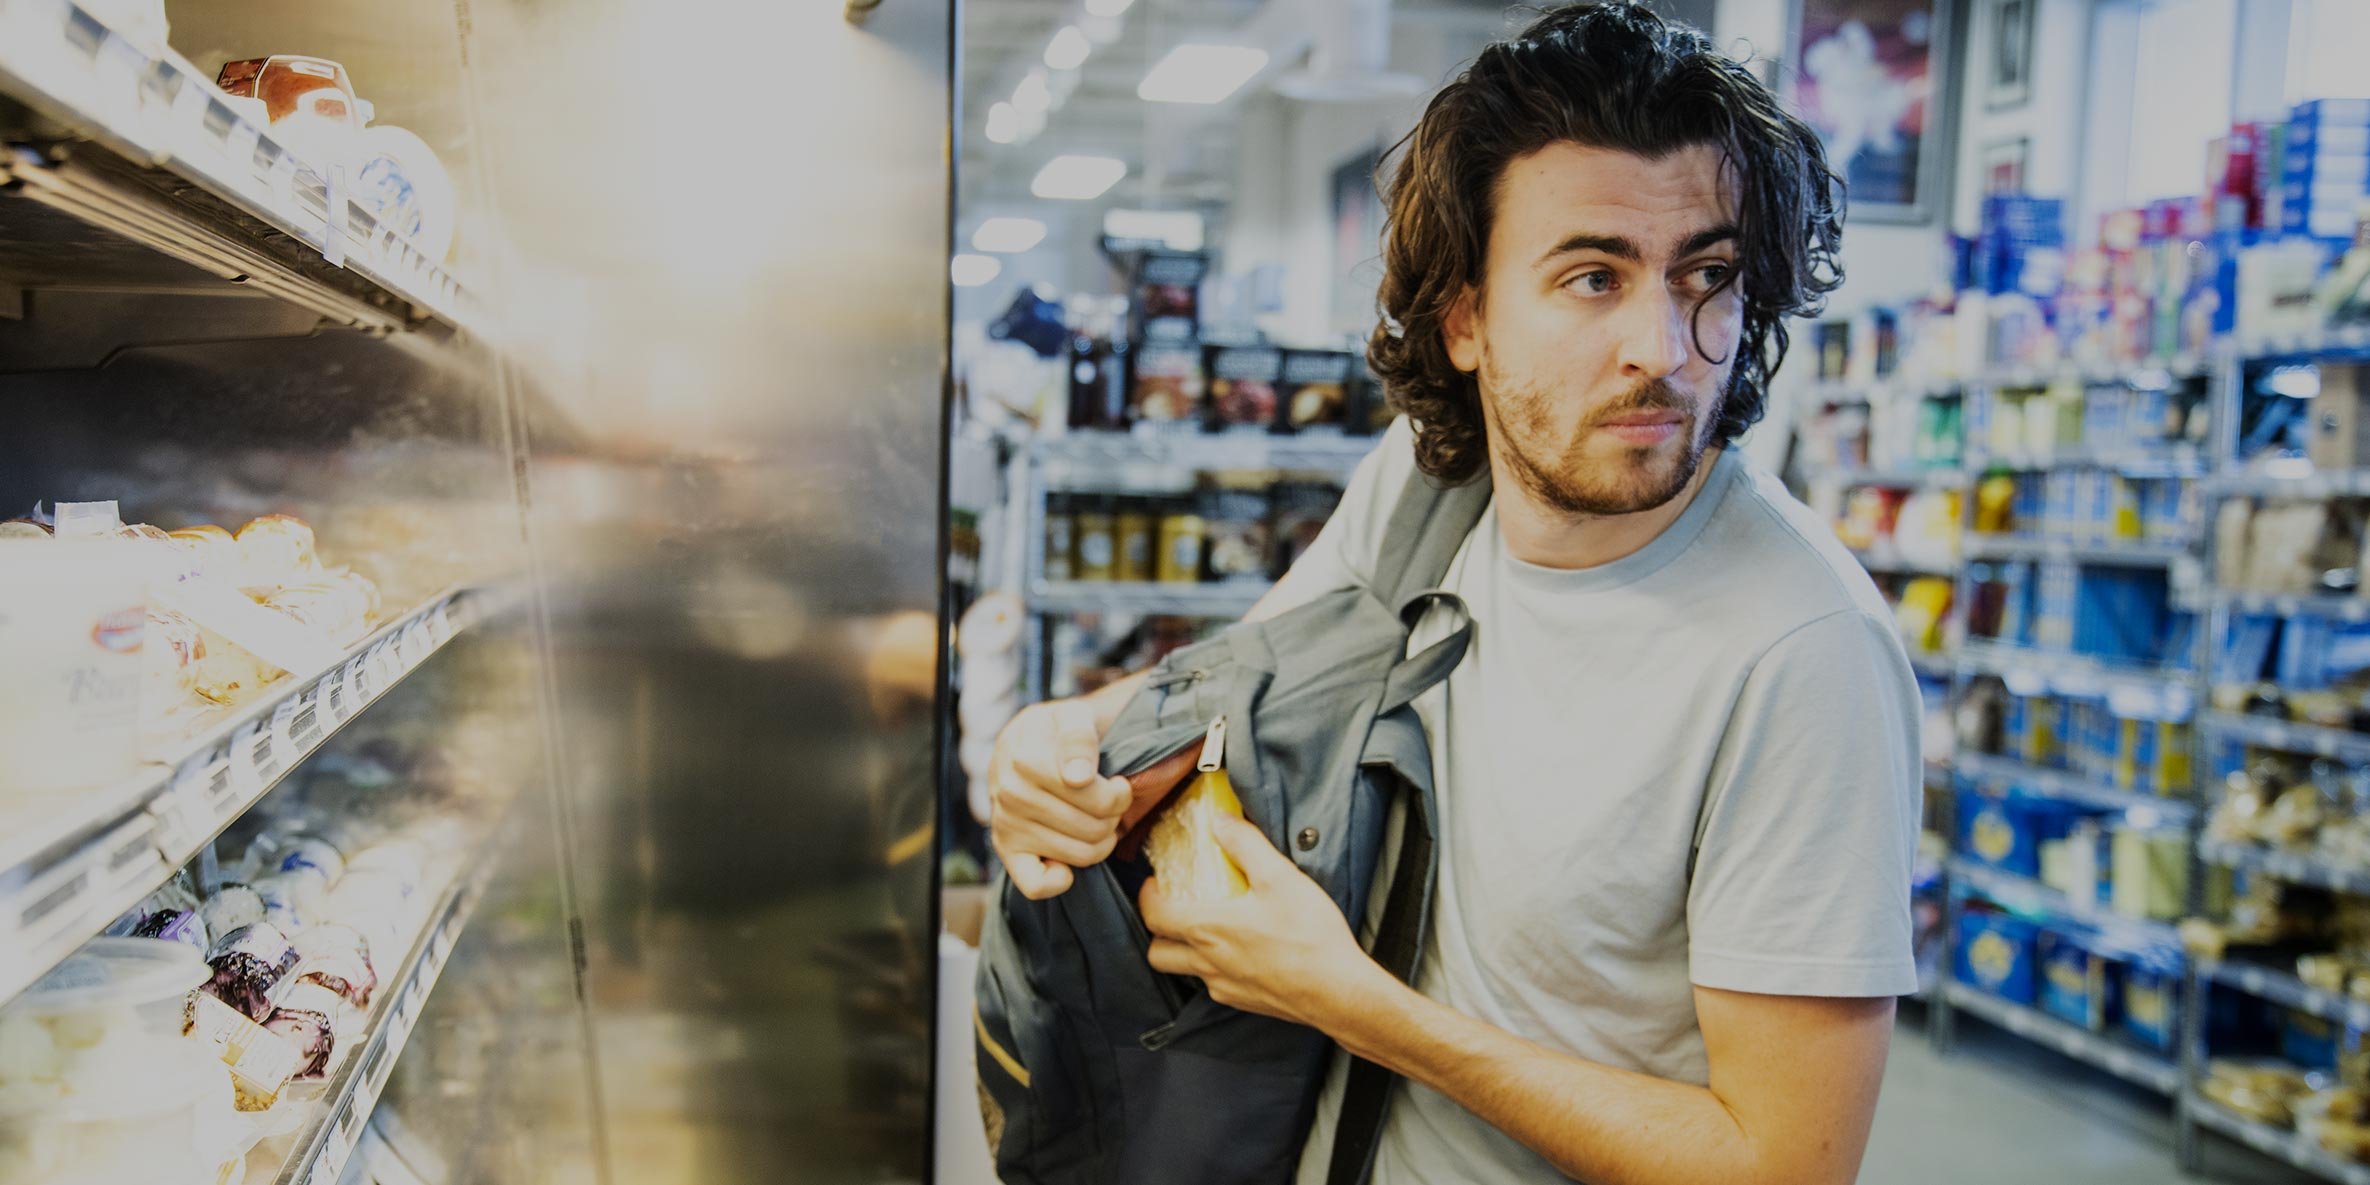 5 Signs of a Shoplifter